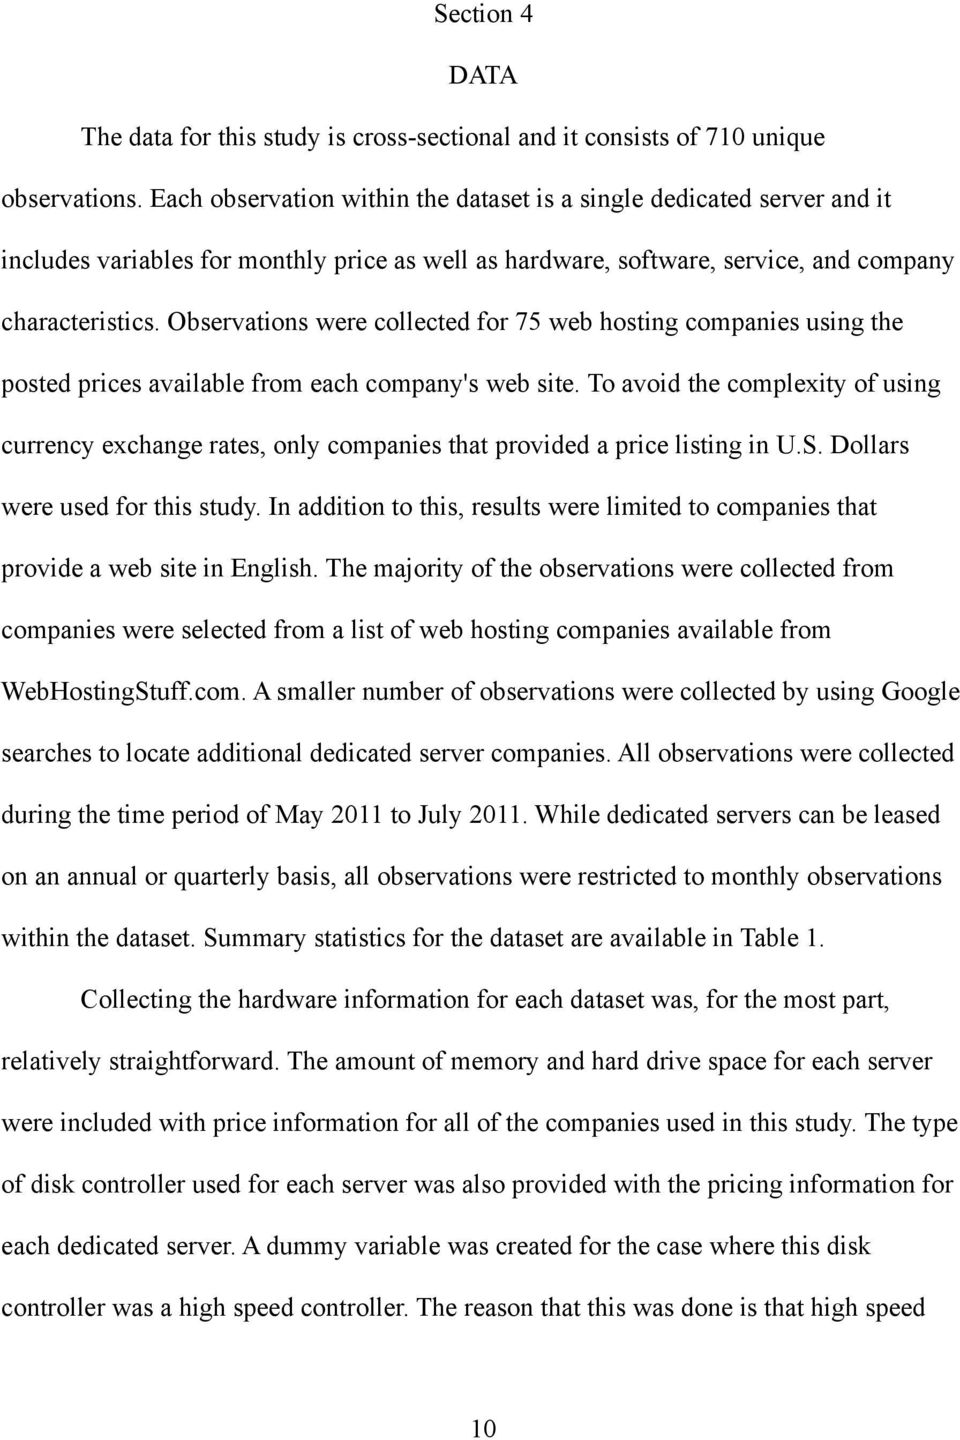 Observations were collected for 75 web hosting companies using the posted prices available from each company's web site.